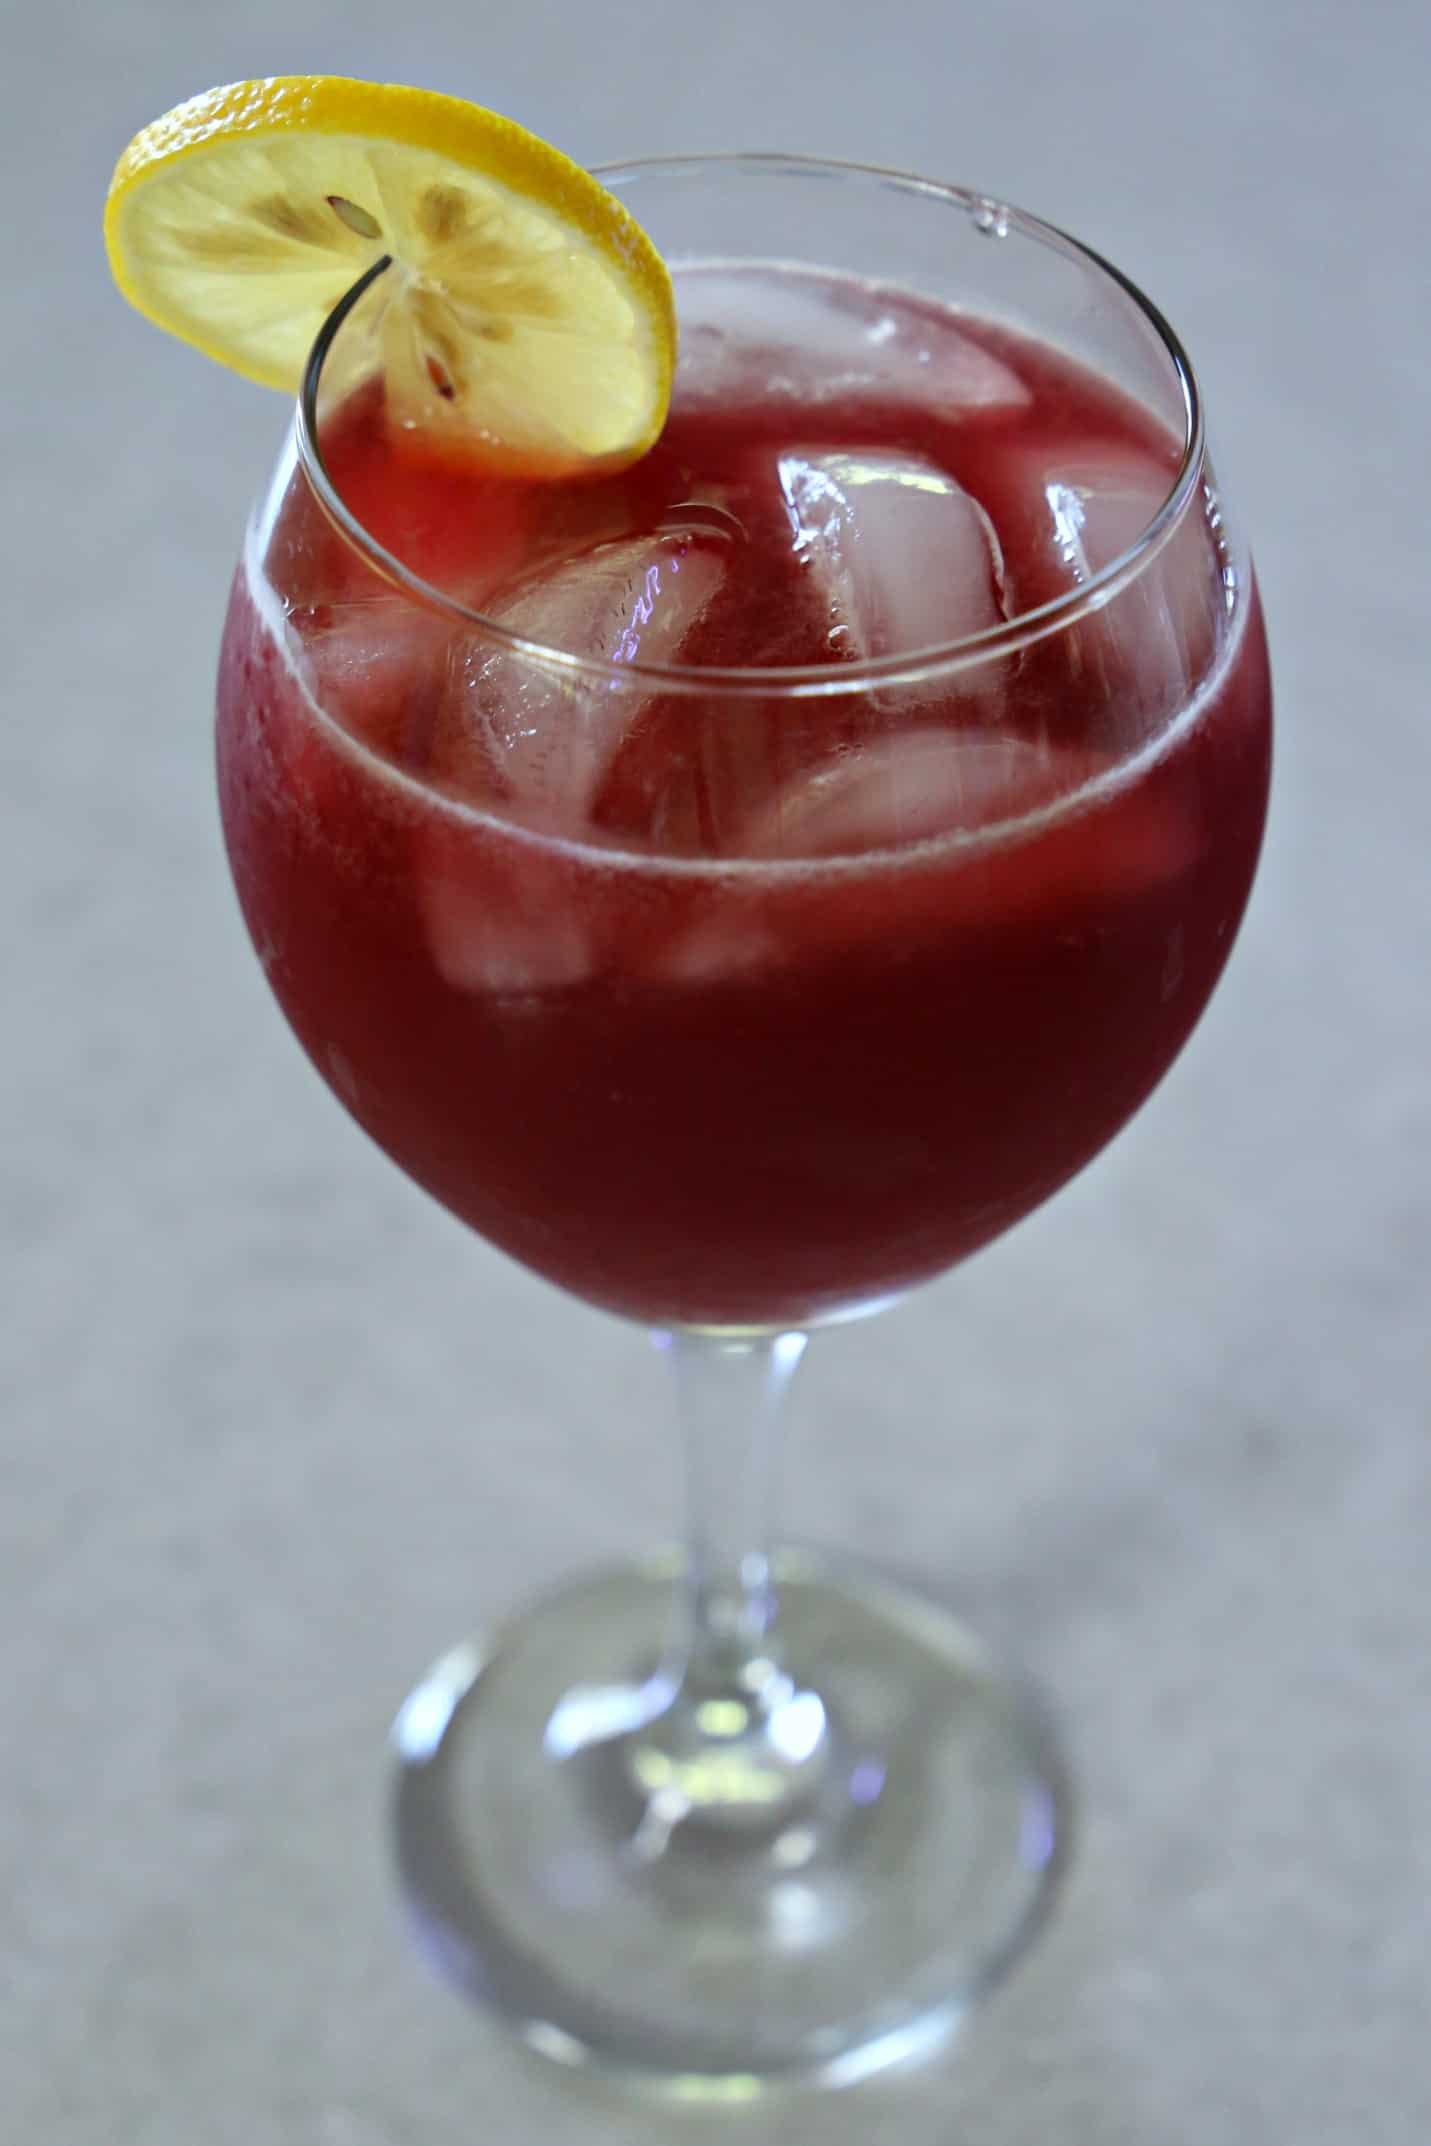 red wine cocktail in a glass